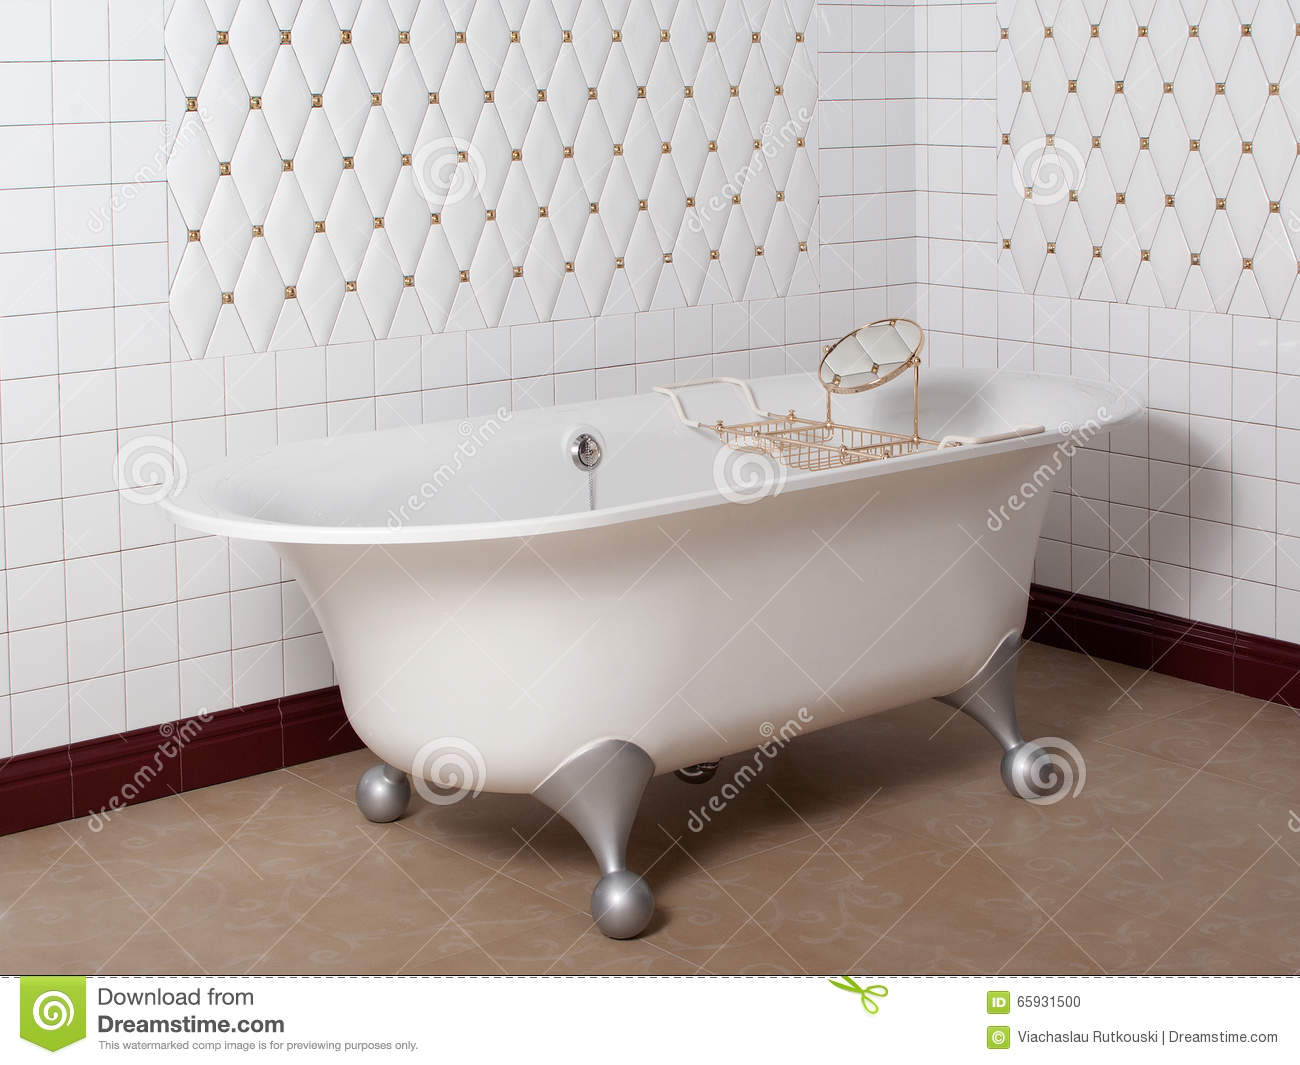 Piastrelle bagno bianche lucide good piastrelle bagno bianche lucide pasionwe with piastrelle - Piastrelle bagno bianche ...